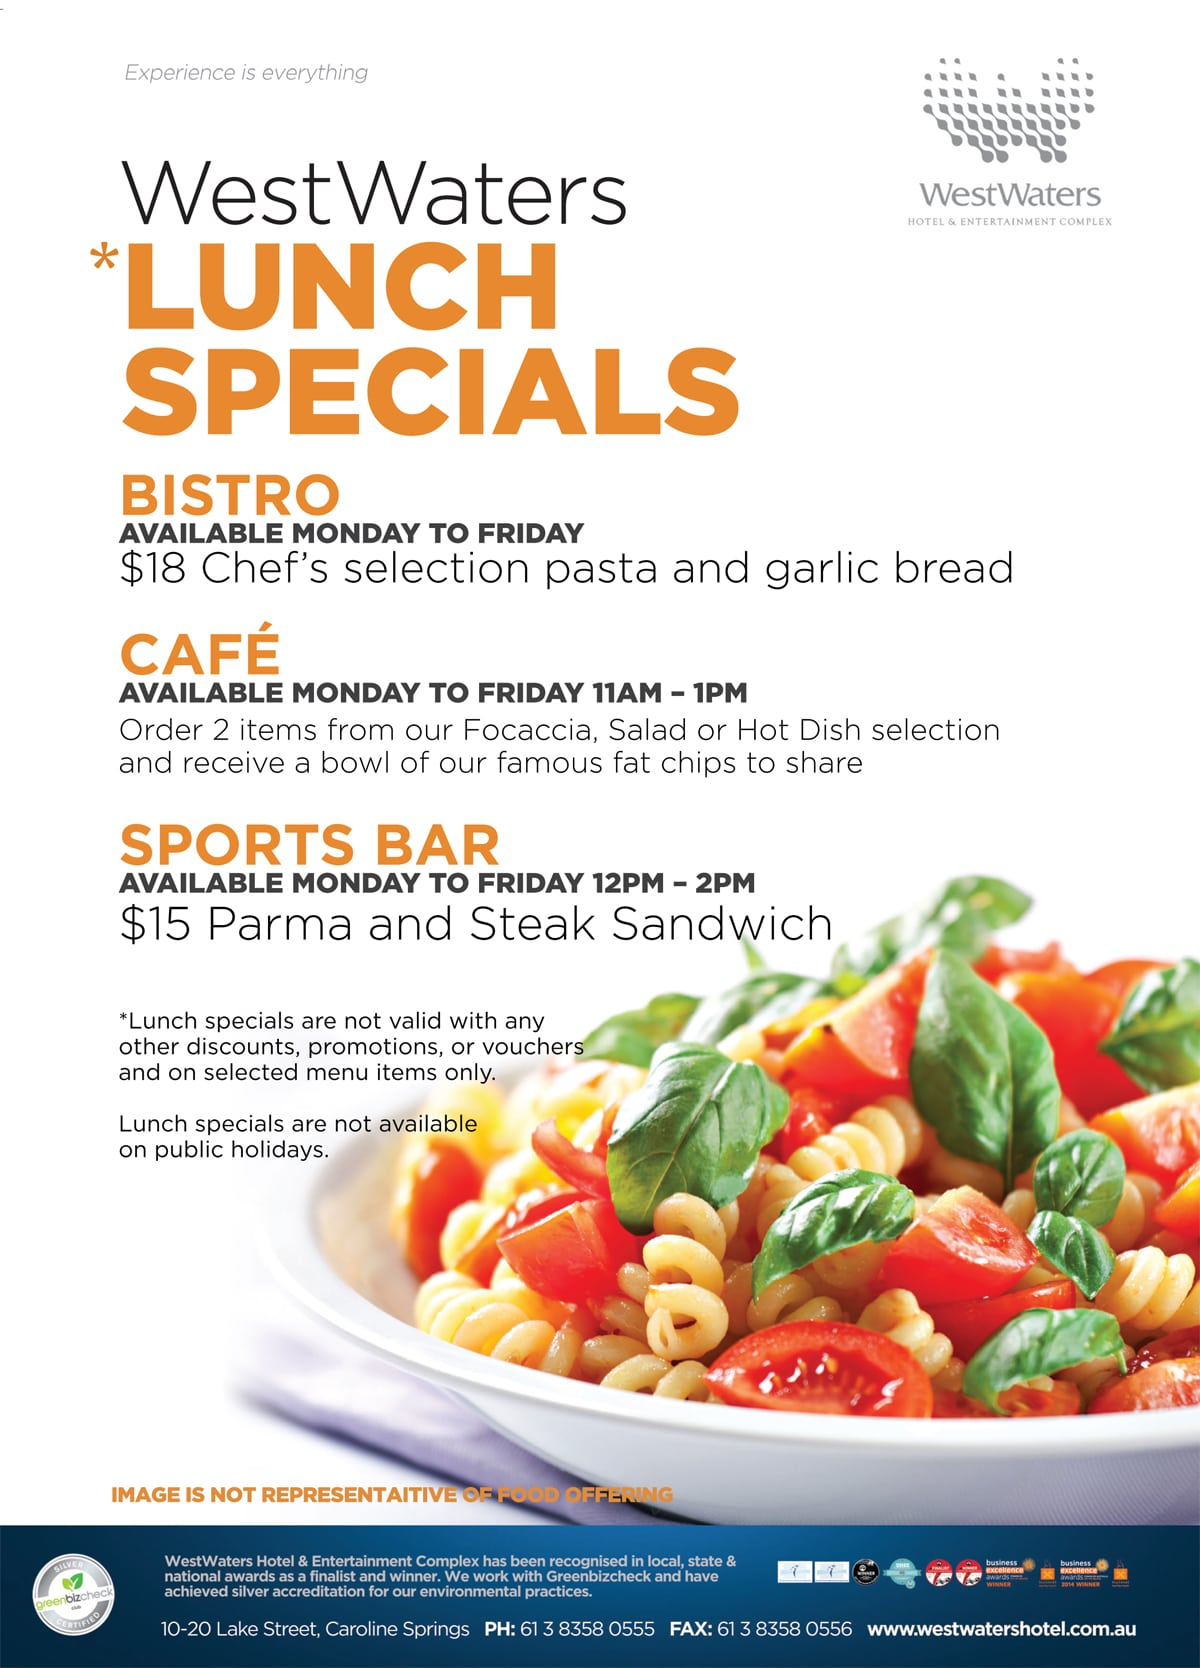 Lunch specials at westwaters hotel westwaters for Lunch specials